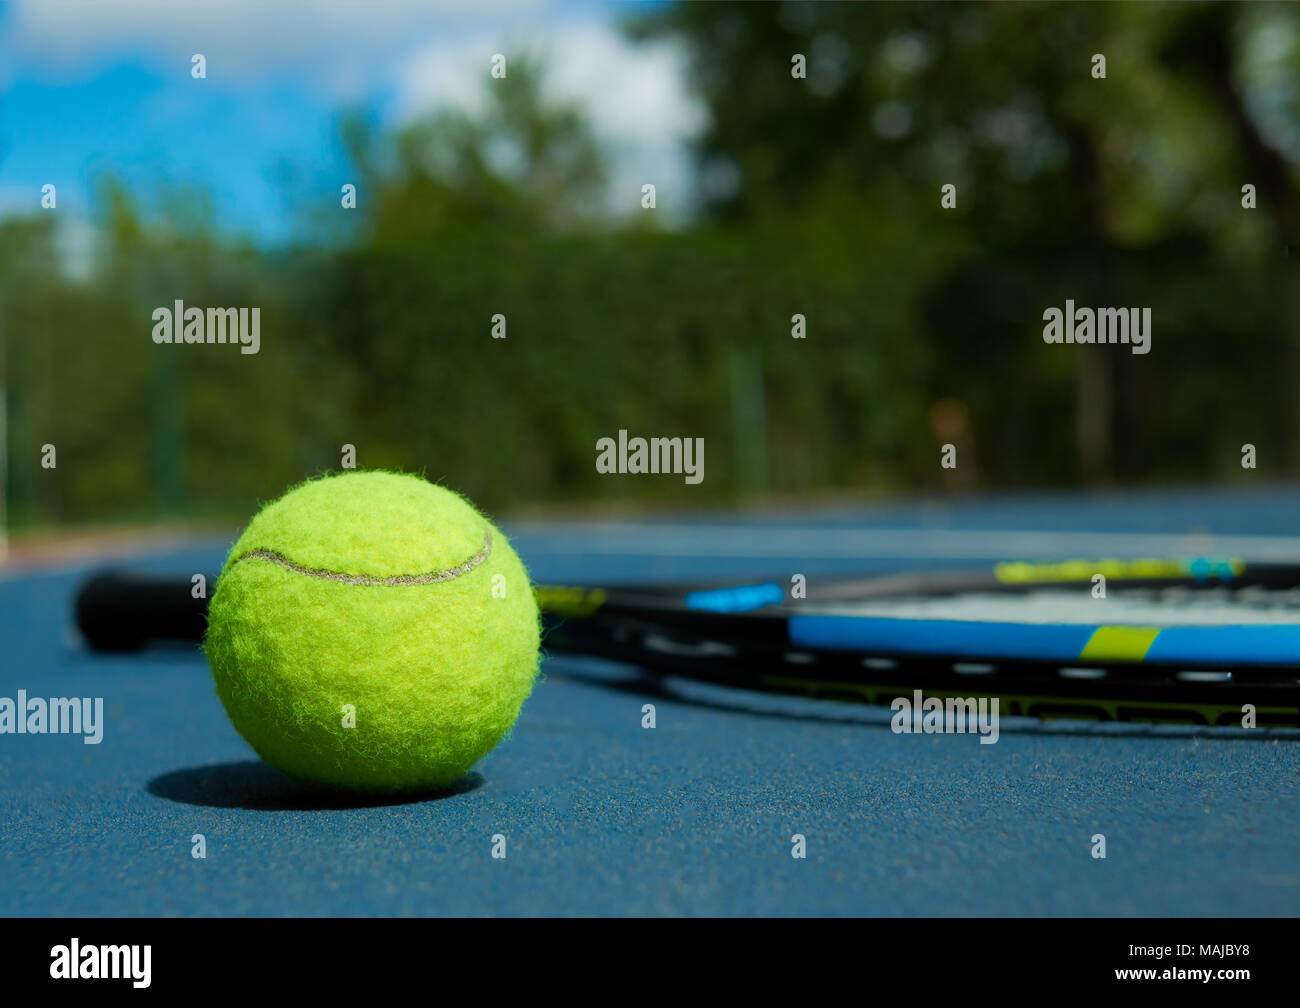 Close up of tennis ball on professional racket background, laying on blue tennis court carpet. Photo of professional sport equipment. Concept of tennis outfit photografing. - Stock Image